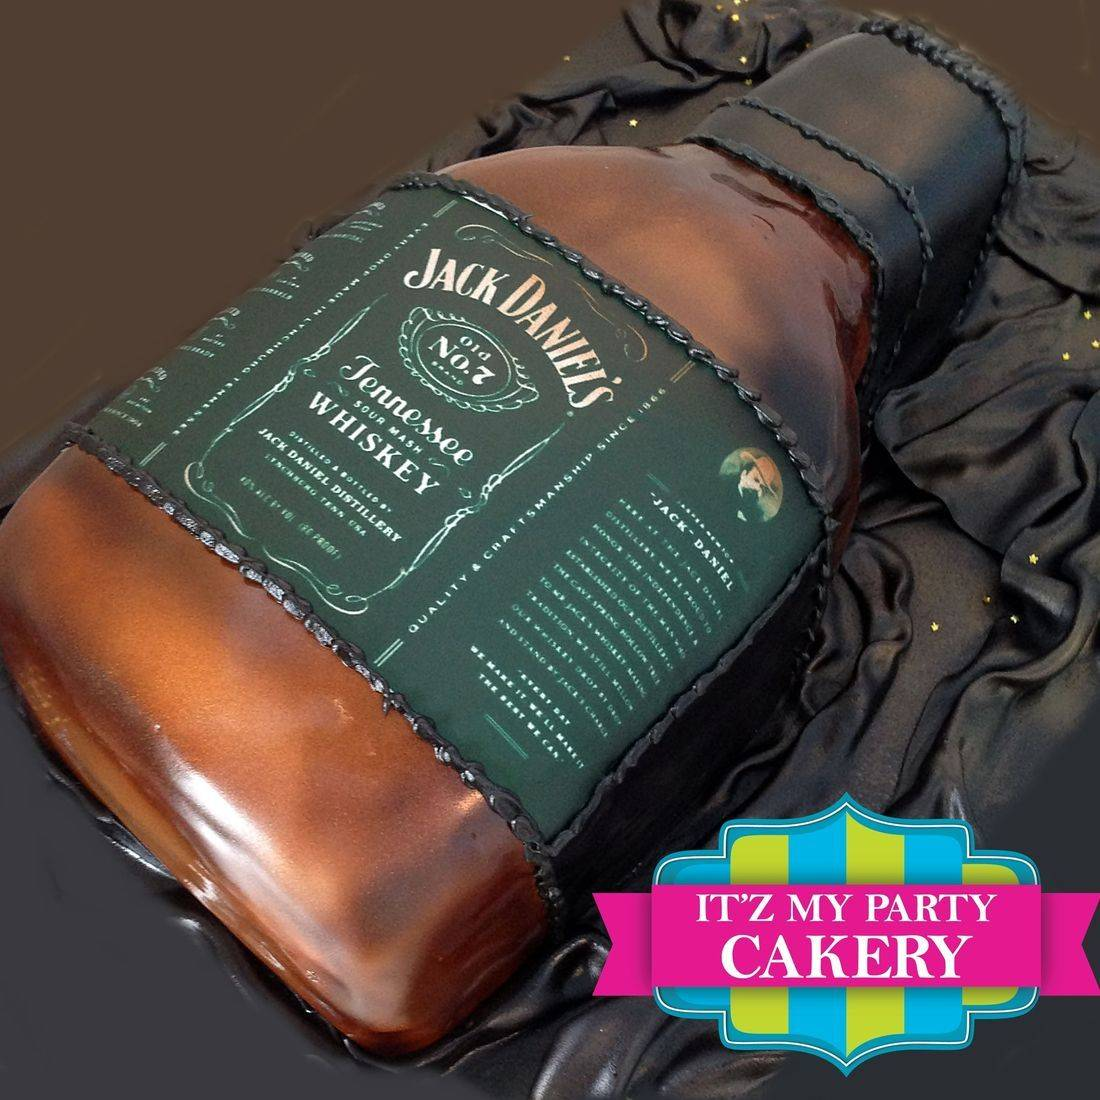 Jack Daniels Bottle Dimensional Cake Milwaukee